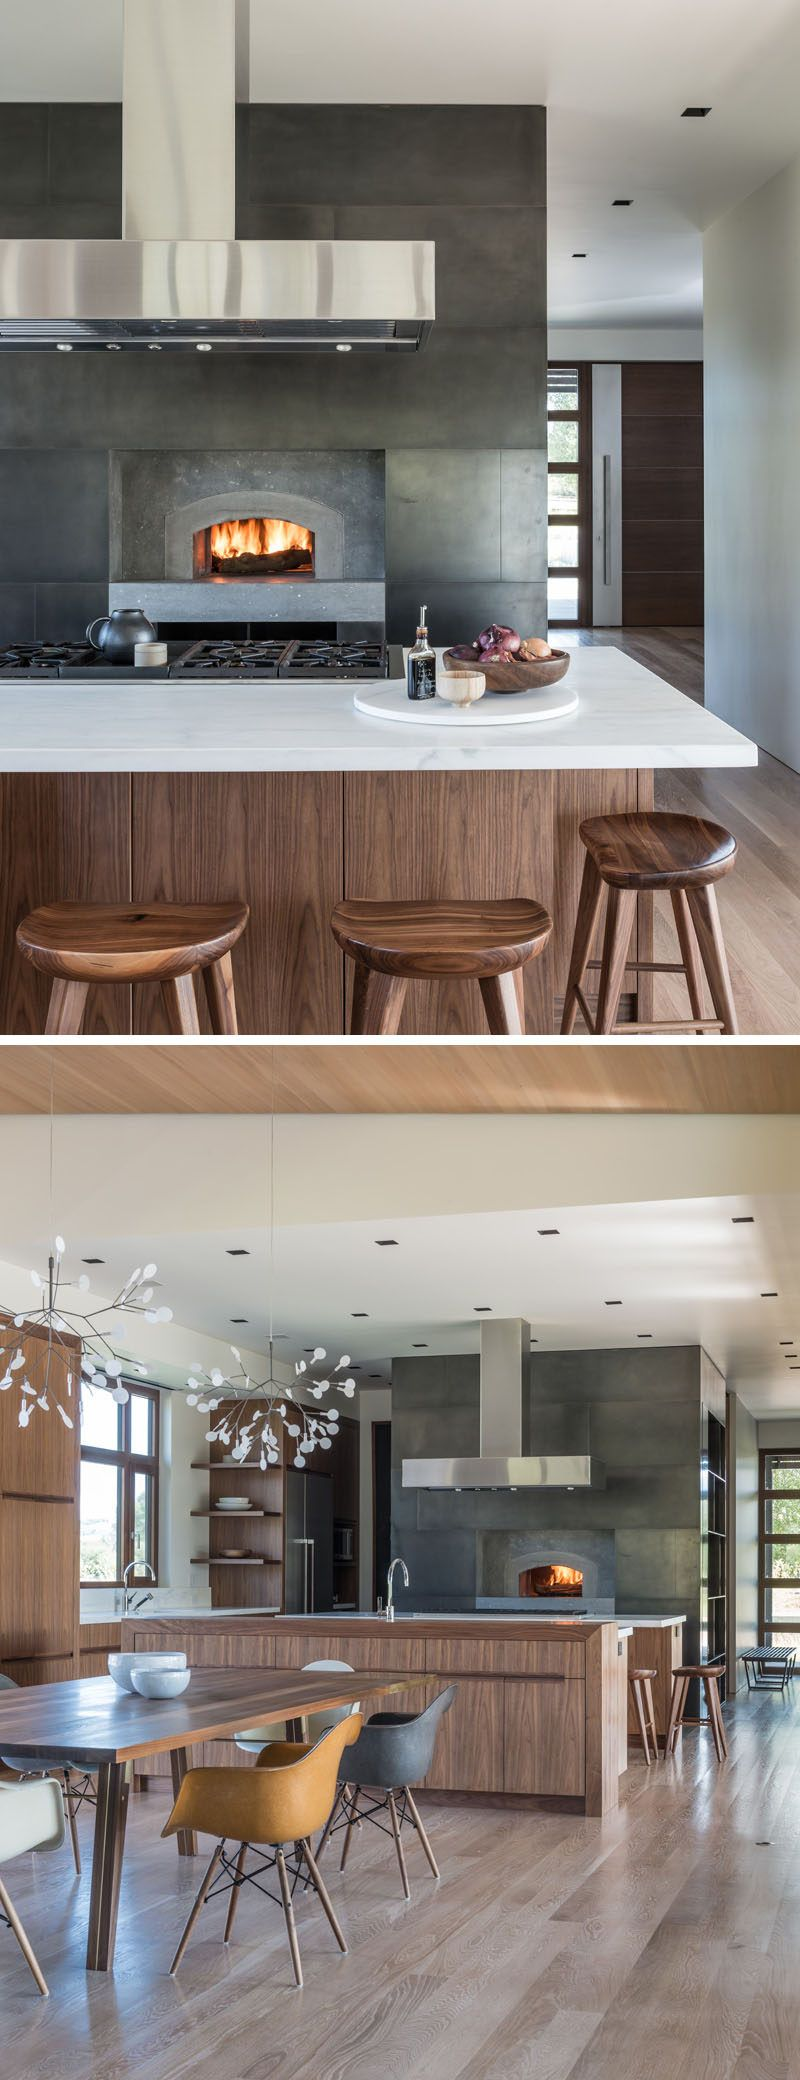 Kitchen Design Idea Awesome Kitchen Design Idea  Include A Builtin Wood Fire Oven In Your Inspiration Design